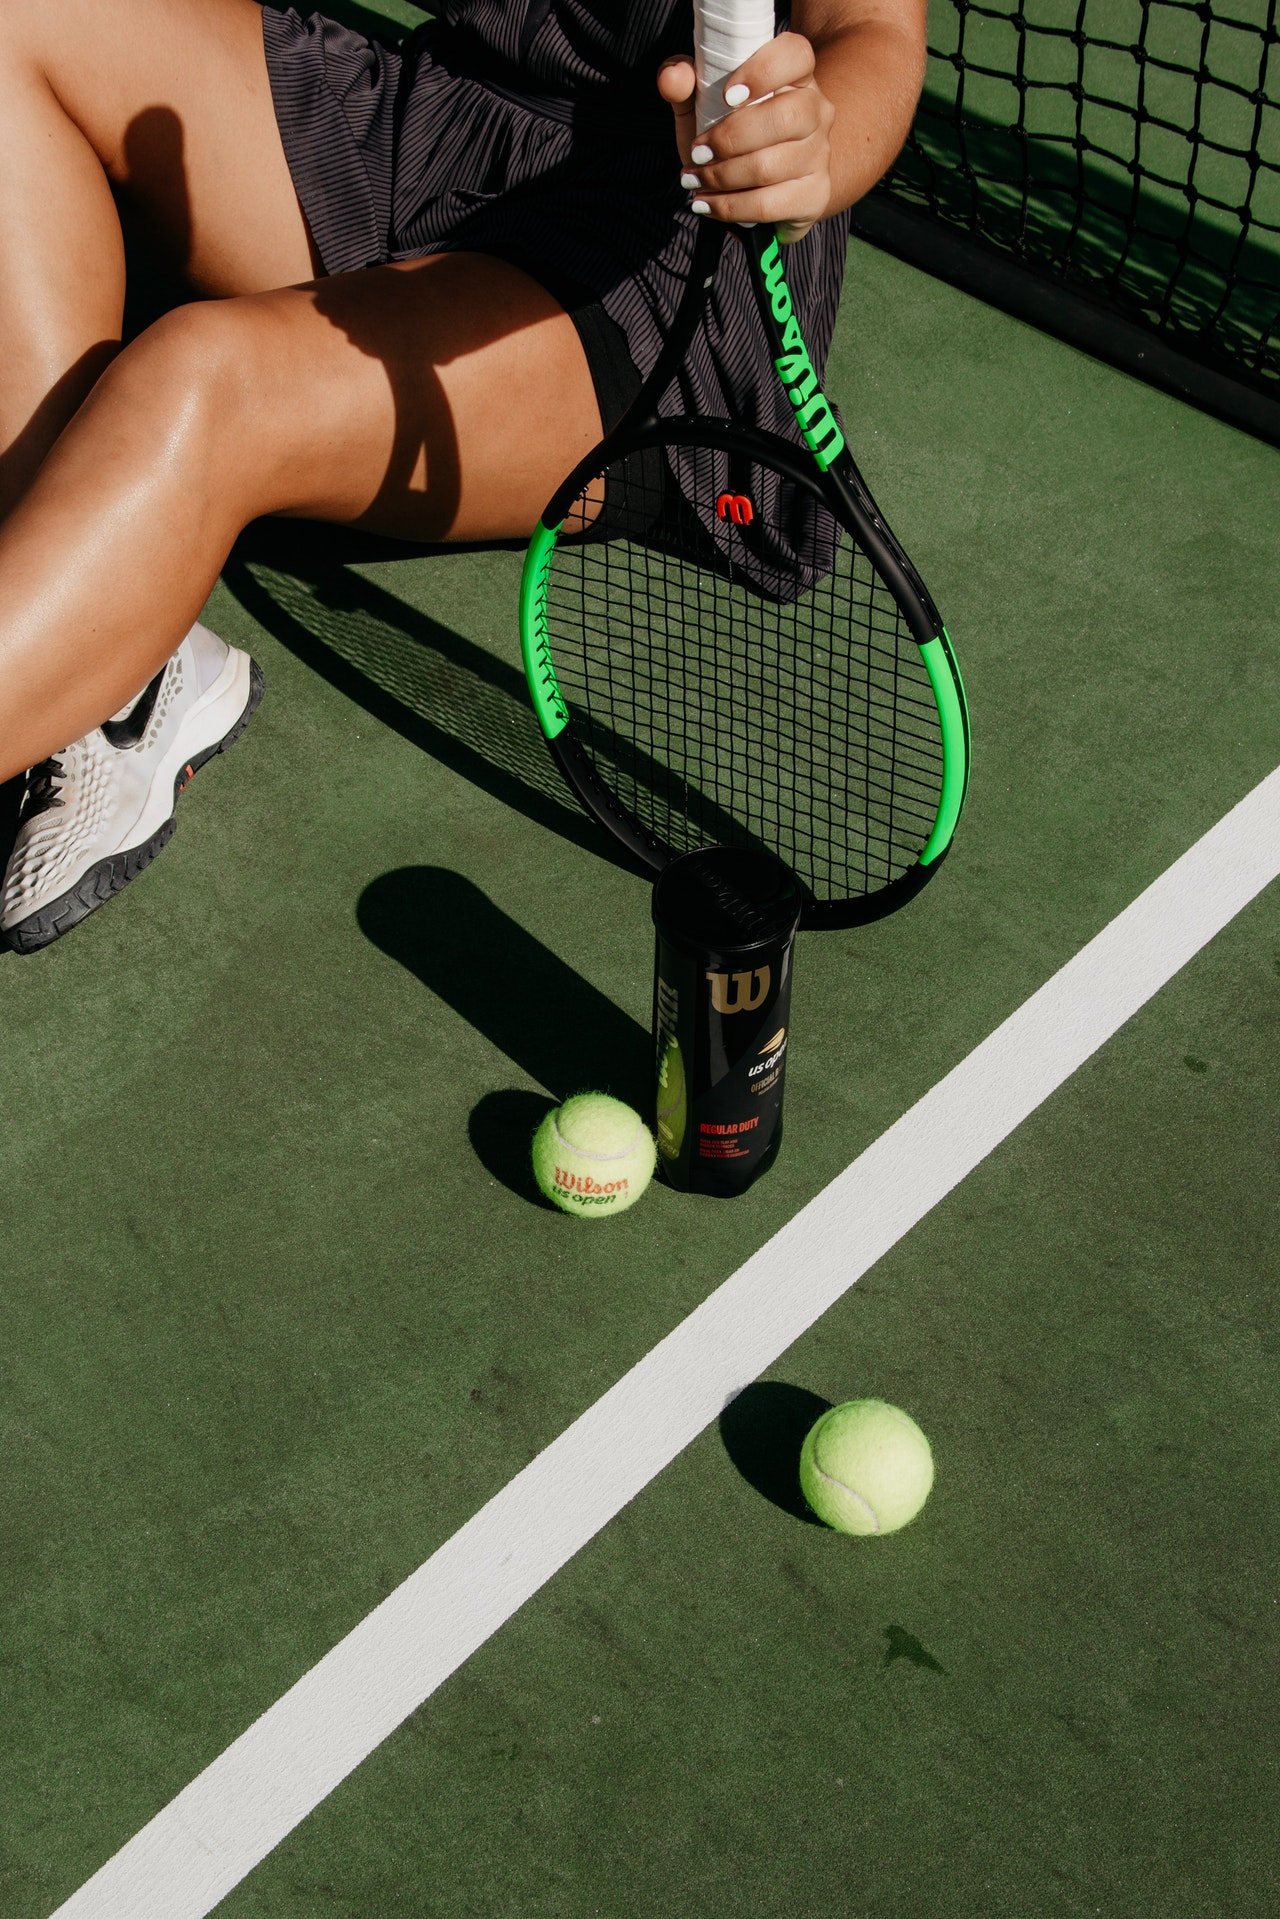 Woman with white nail polish holding a tennis racket